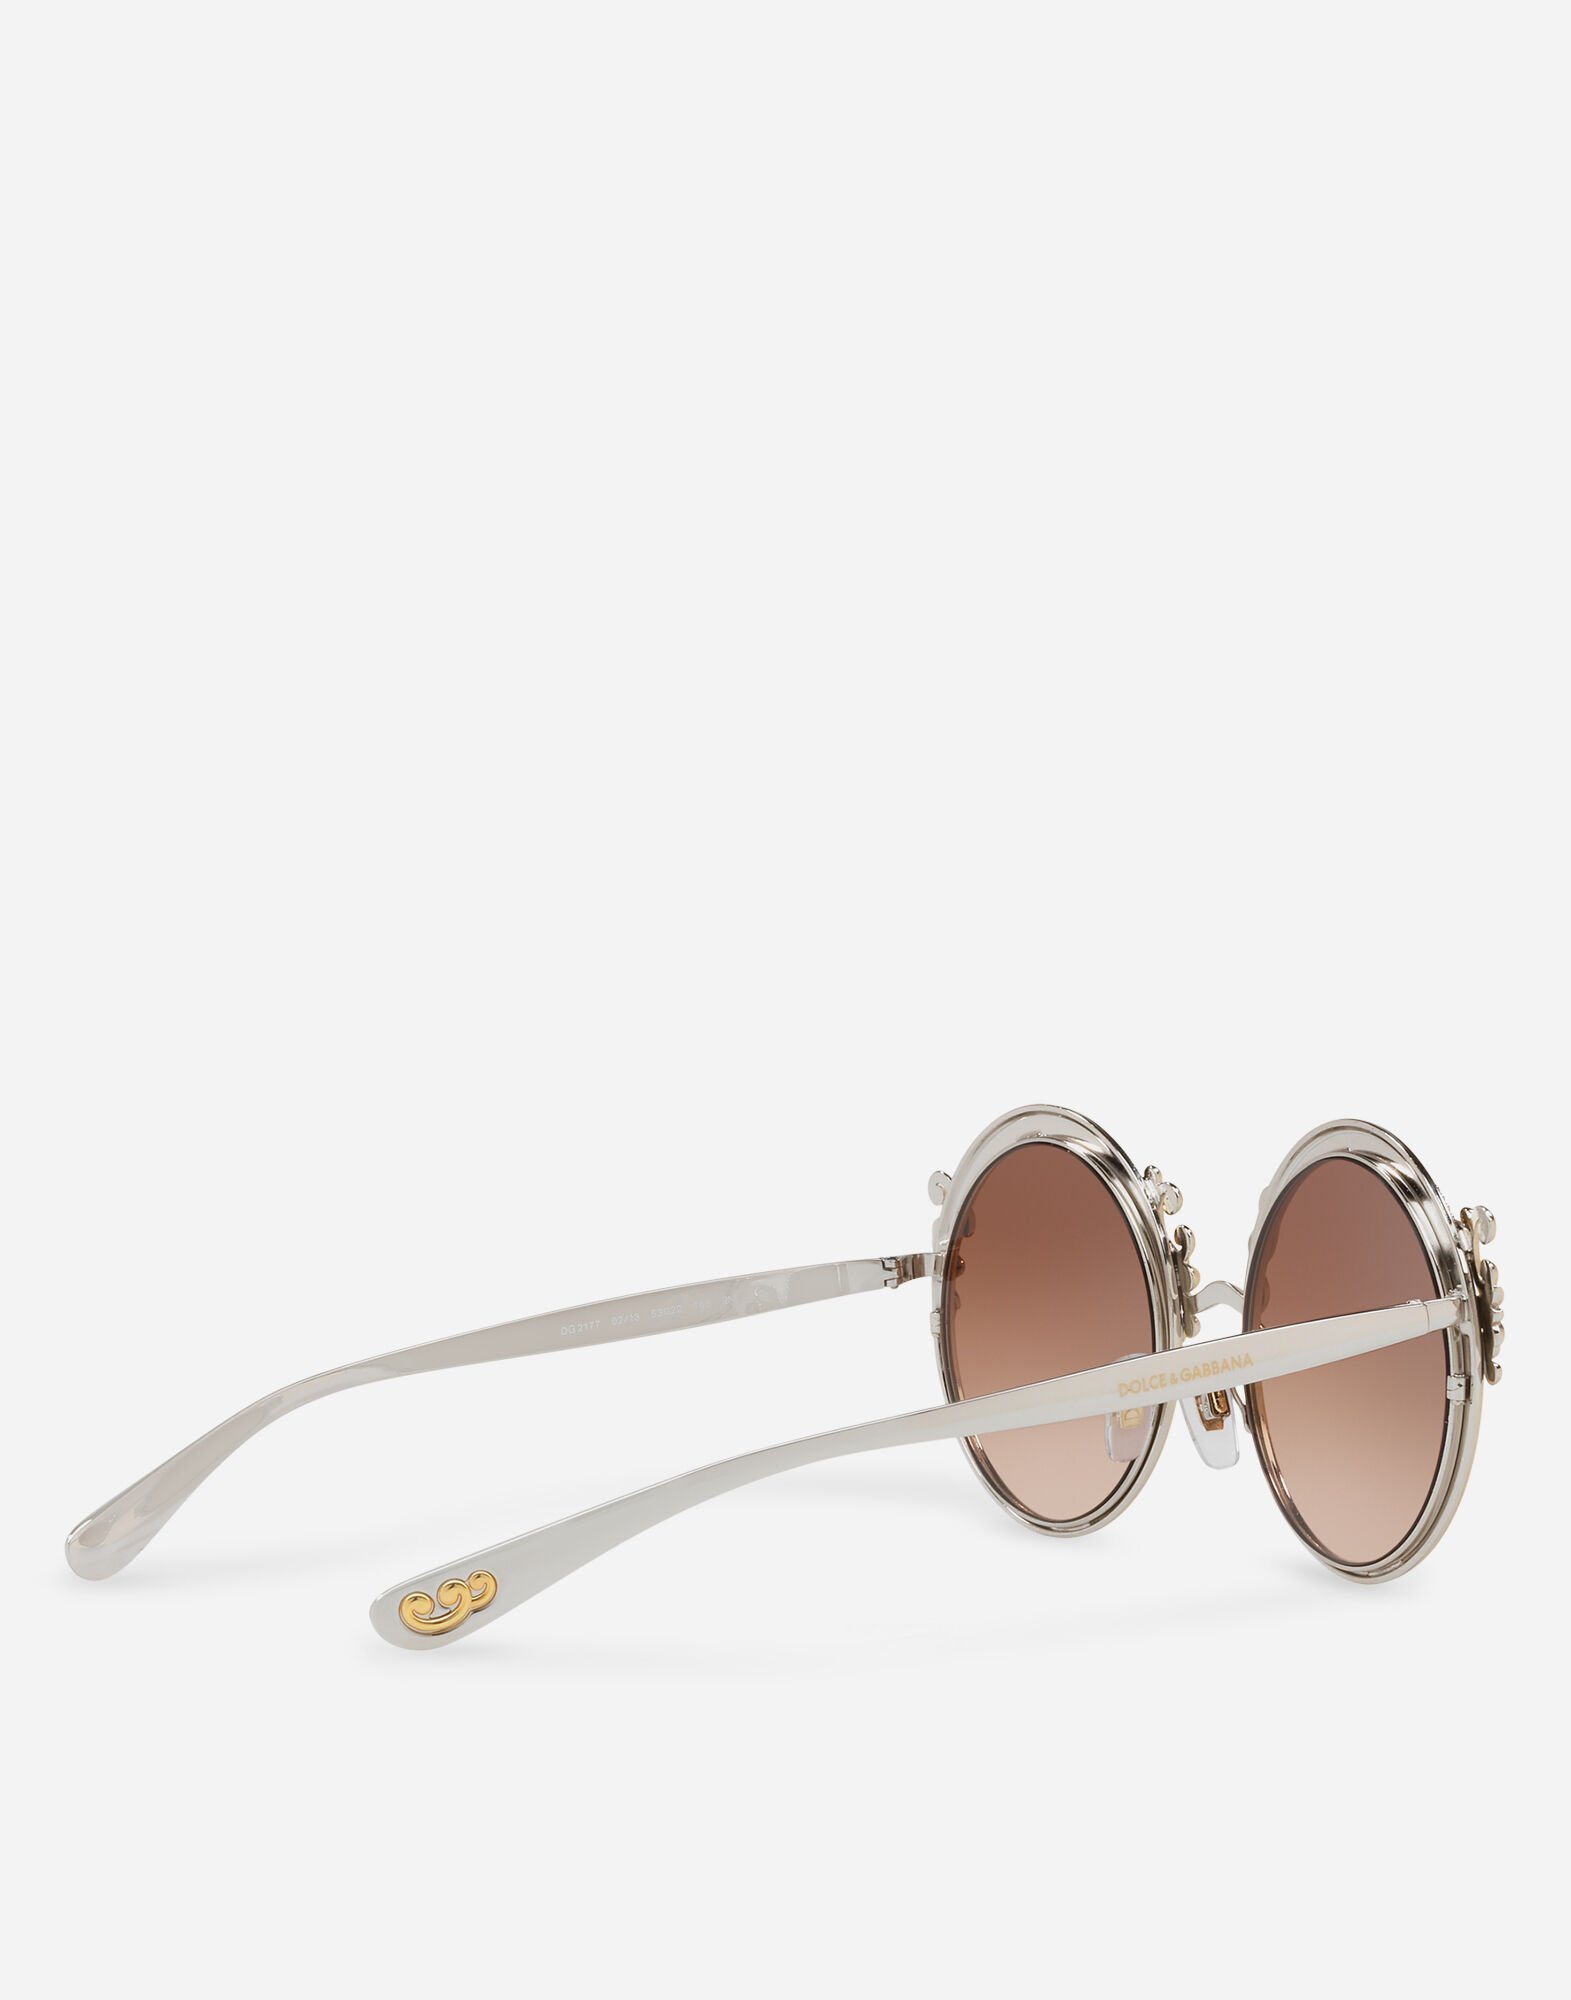 METAL SUNGLASSES WITH BAROQUE DETAILING